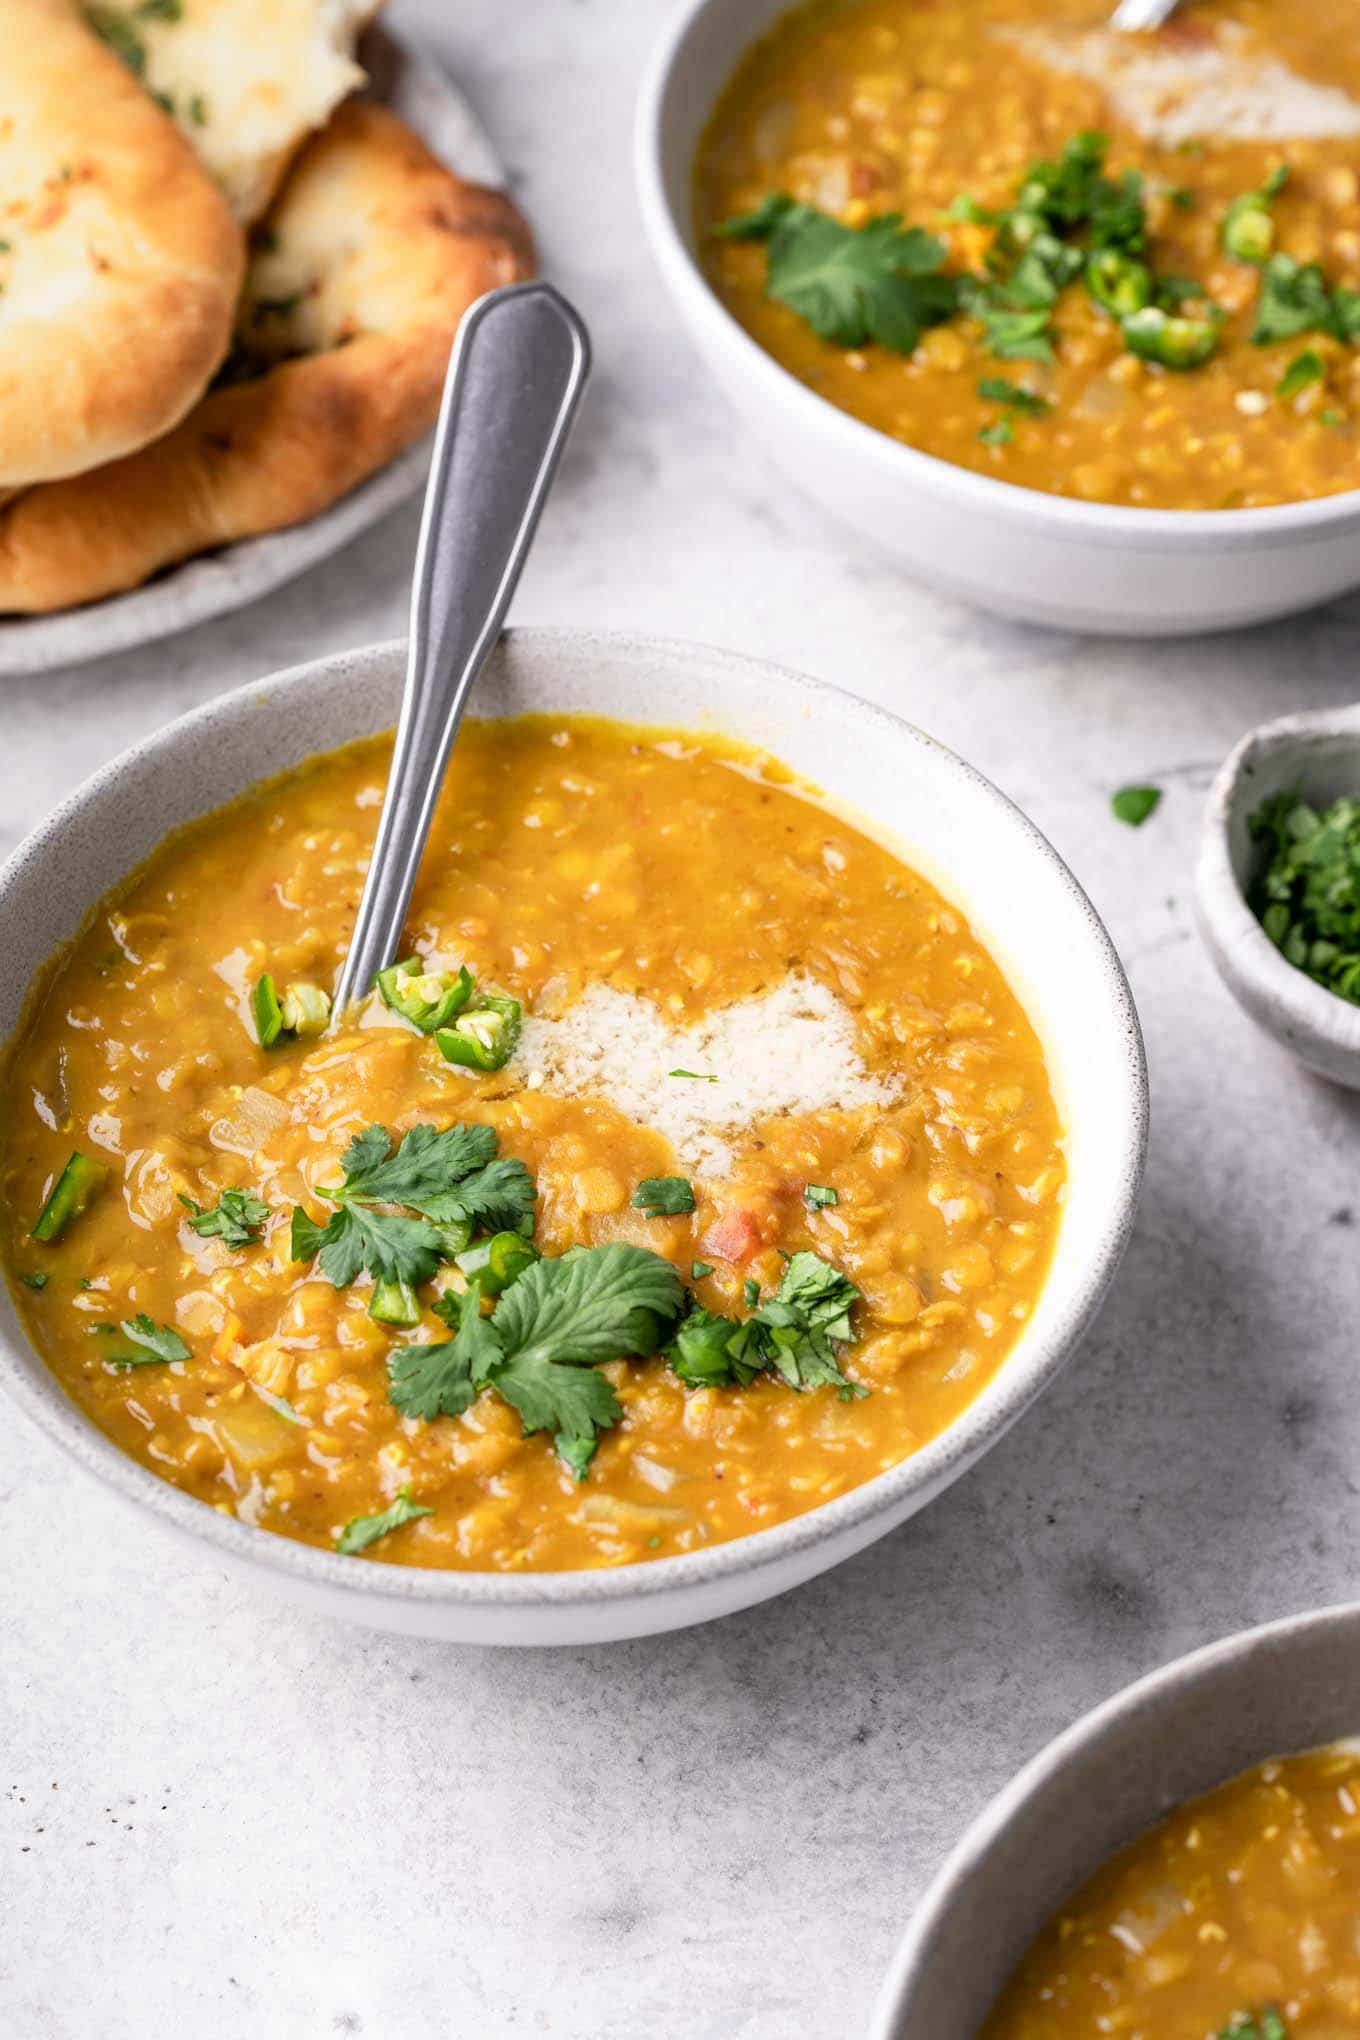 tamarind red lentil soup served in bowls with garlic naan